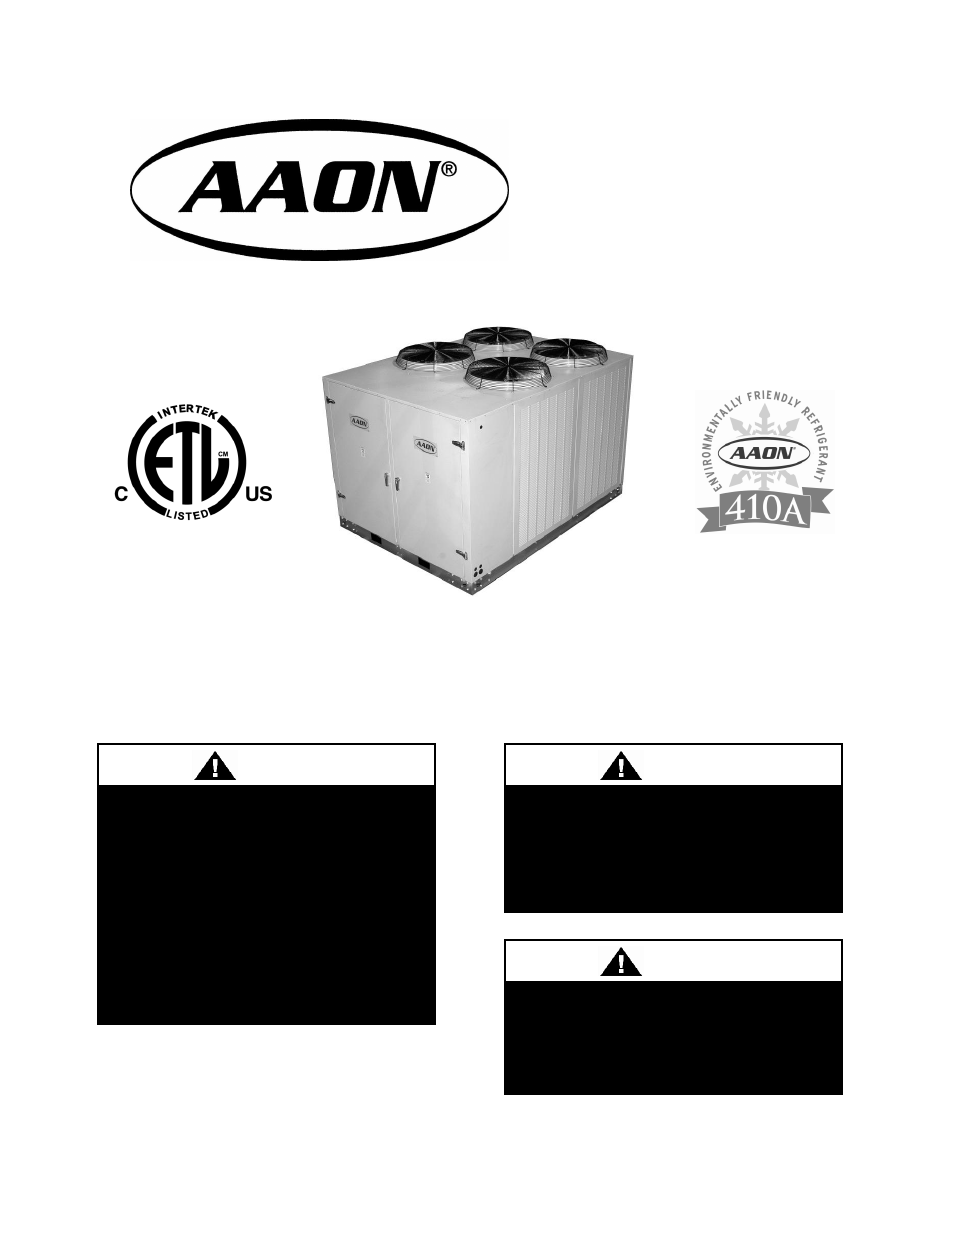 hight resolution of aaon cc 063 user manual 52 pages also for cc 055 cc 045 cc rh manualsdir com aaon 27388 wiring diagrams pdf aaon wiring diagrams rtus